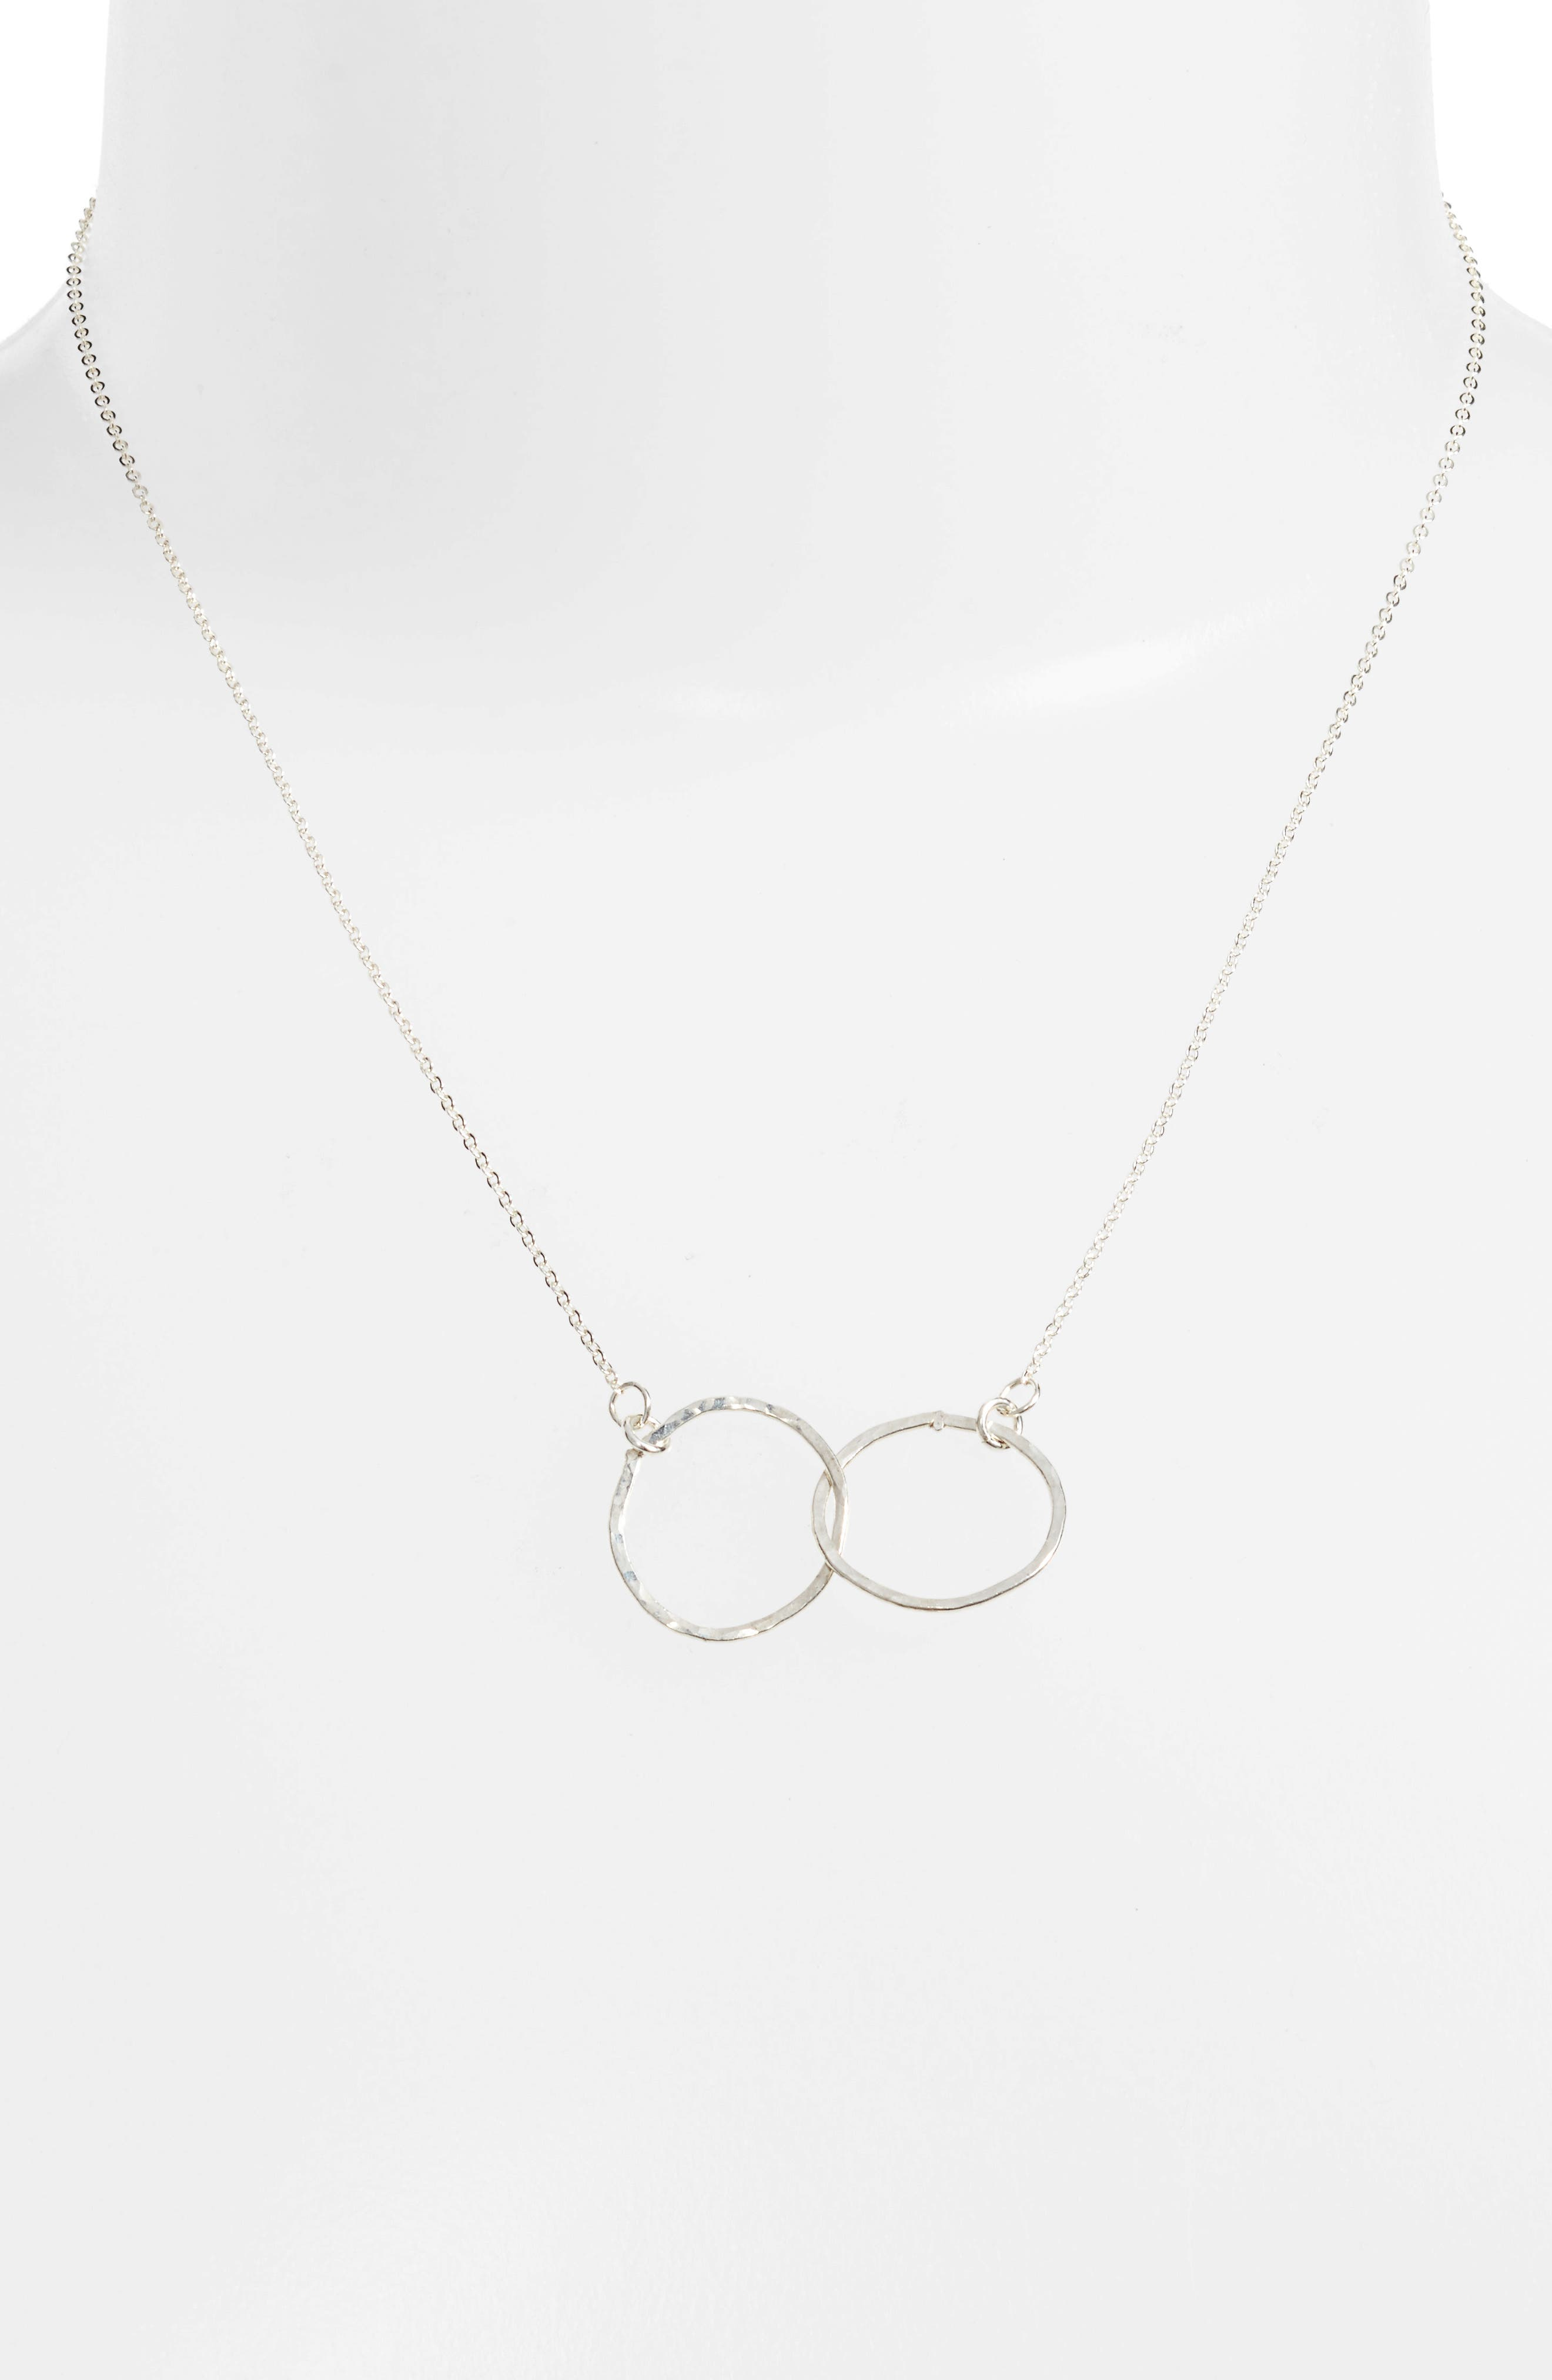 Lucky Eternity Necklace,                             Main thumbnail 1, color,                             Silver